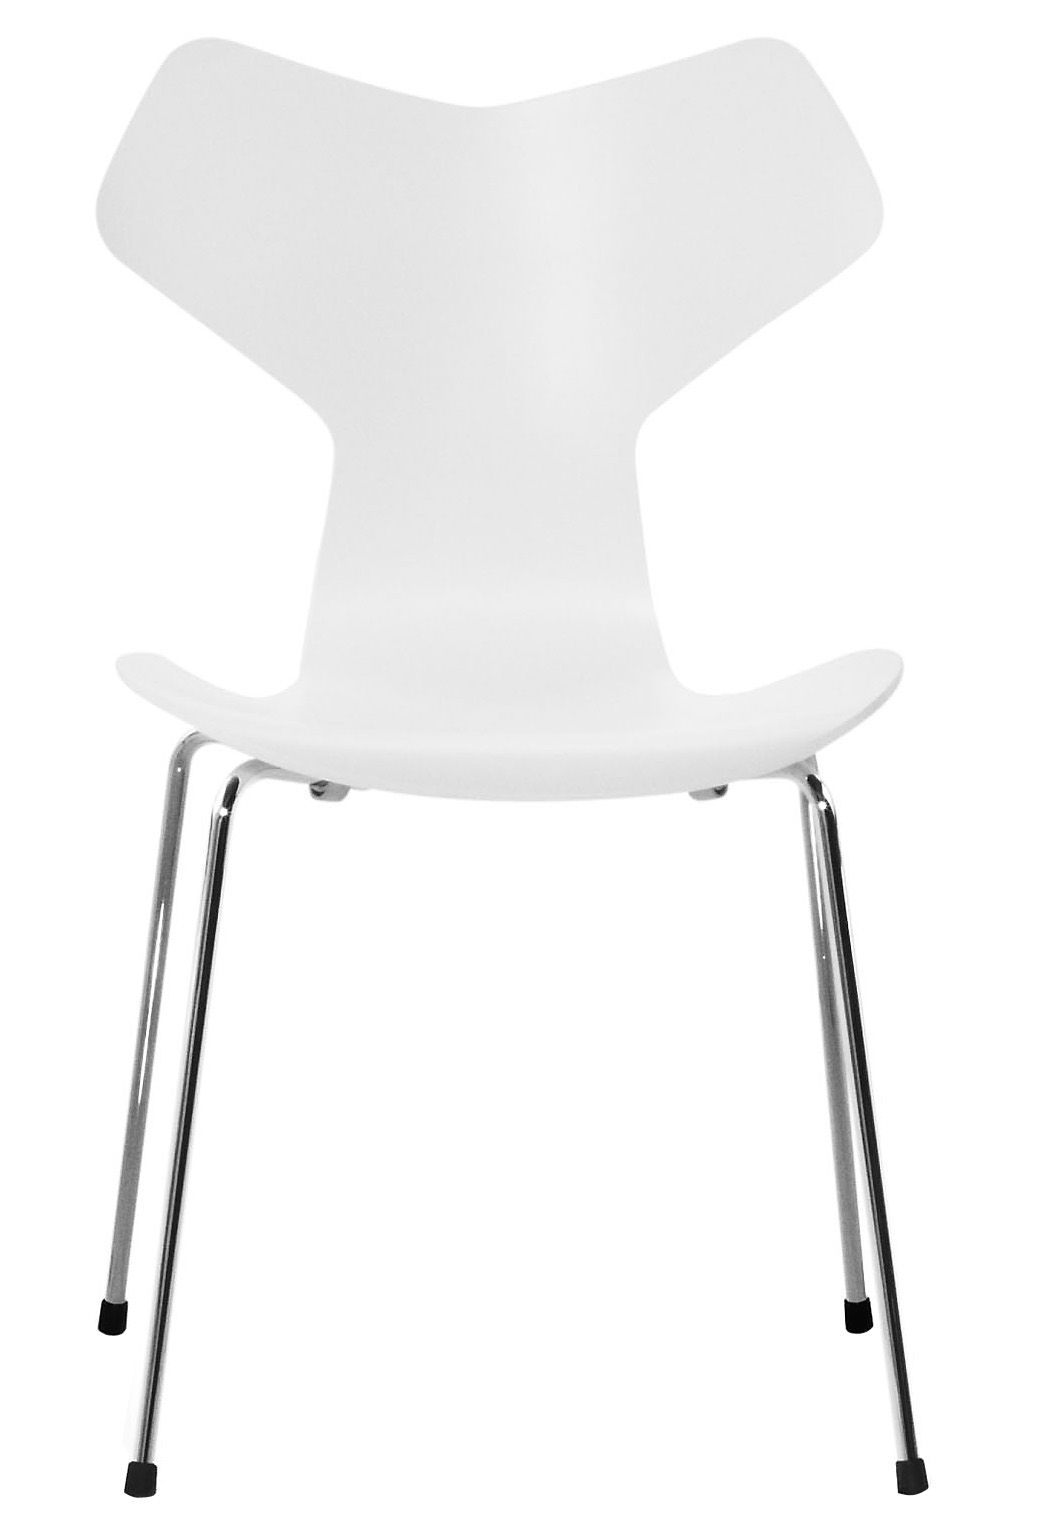 Furniture - Chairs - Grand Prix Stacking chair - Wood by Fritz Hansen - White - Ashwood, Steel